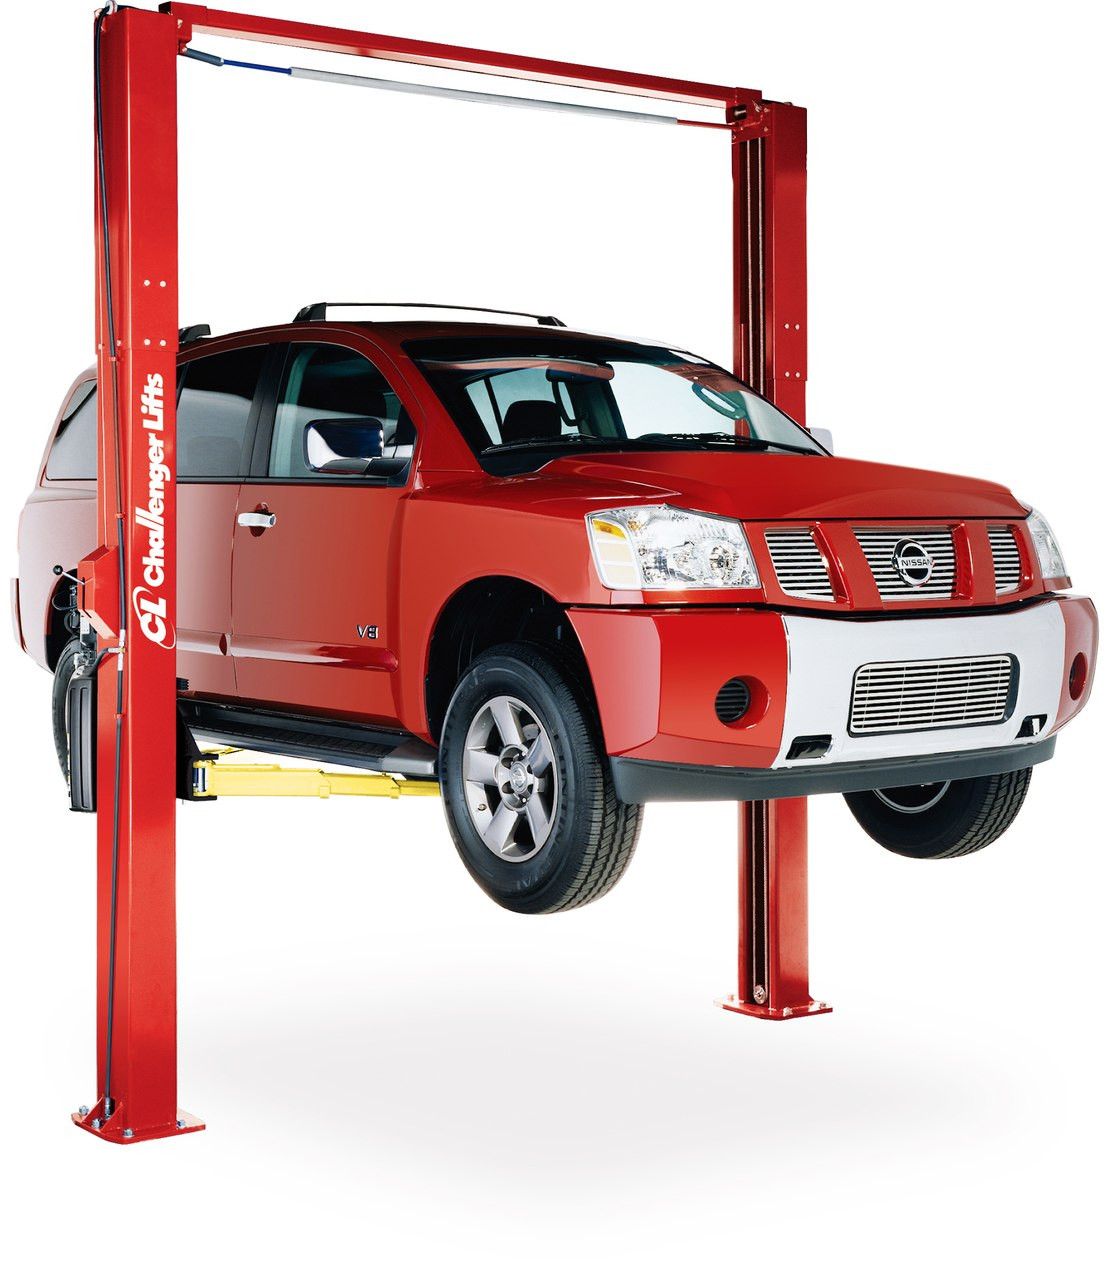 10000 Lb Car Lift >> Challenger Lifts LE10 Symmetric/Asymmetric Two Post Car Lift | JMCAutomotiveEquipment.com